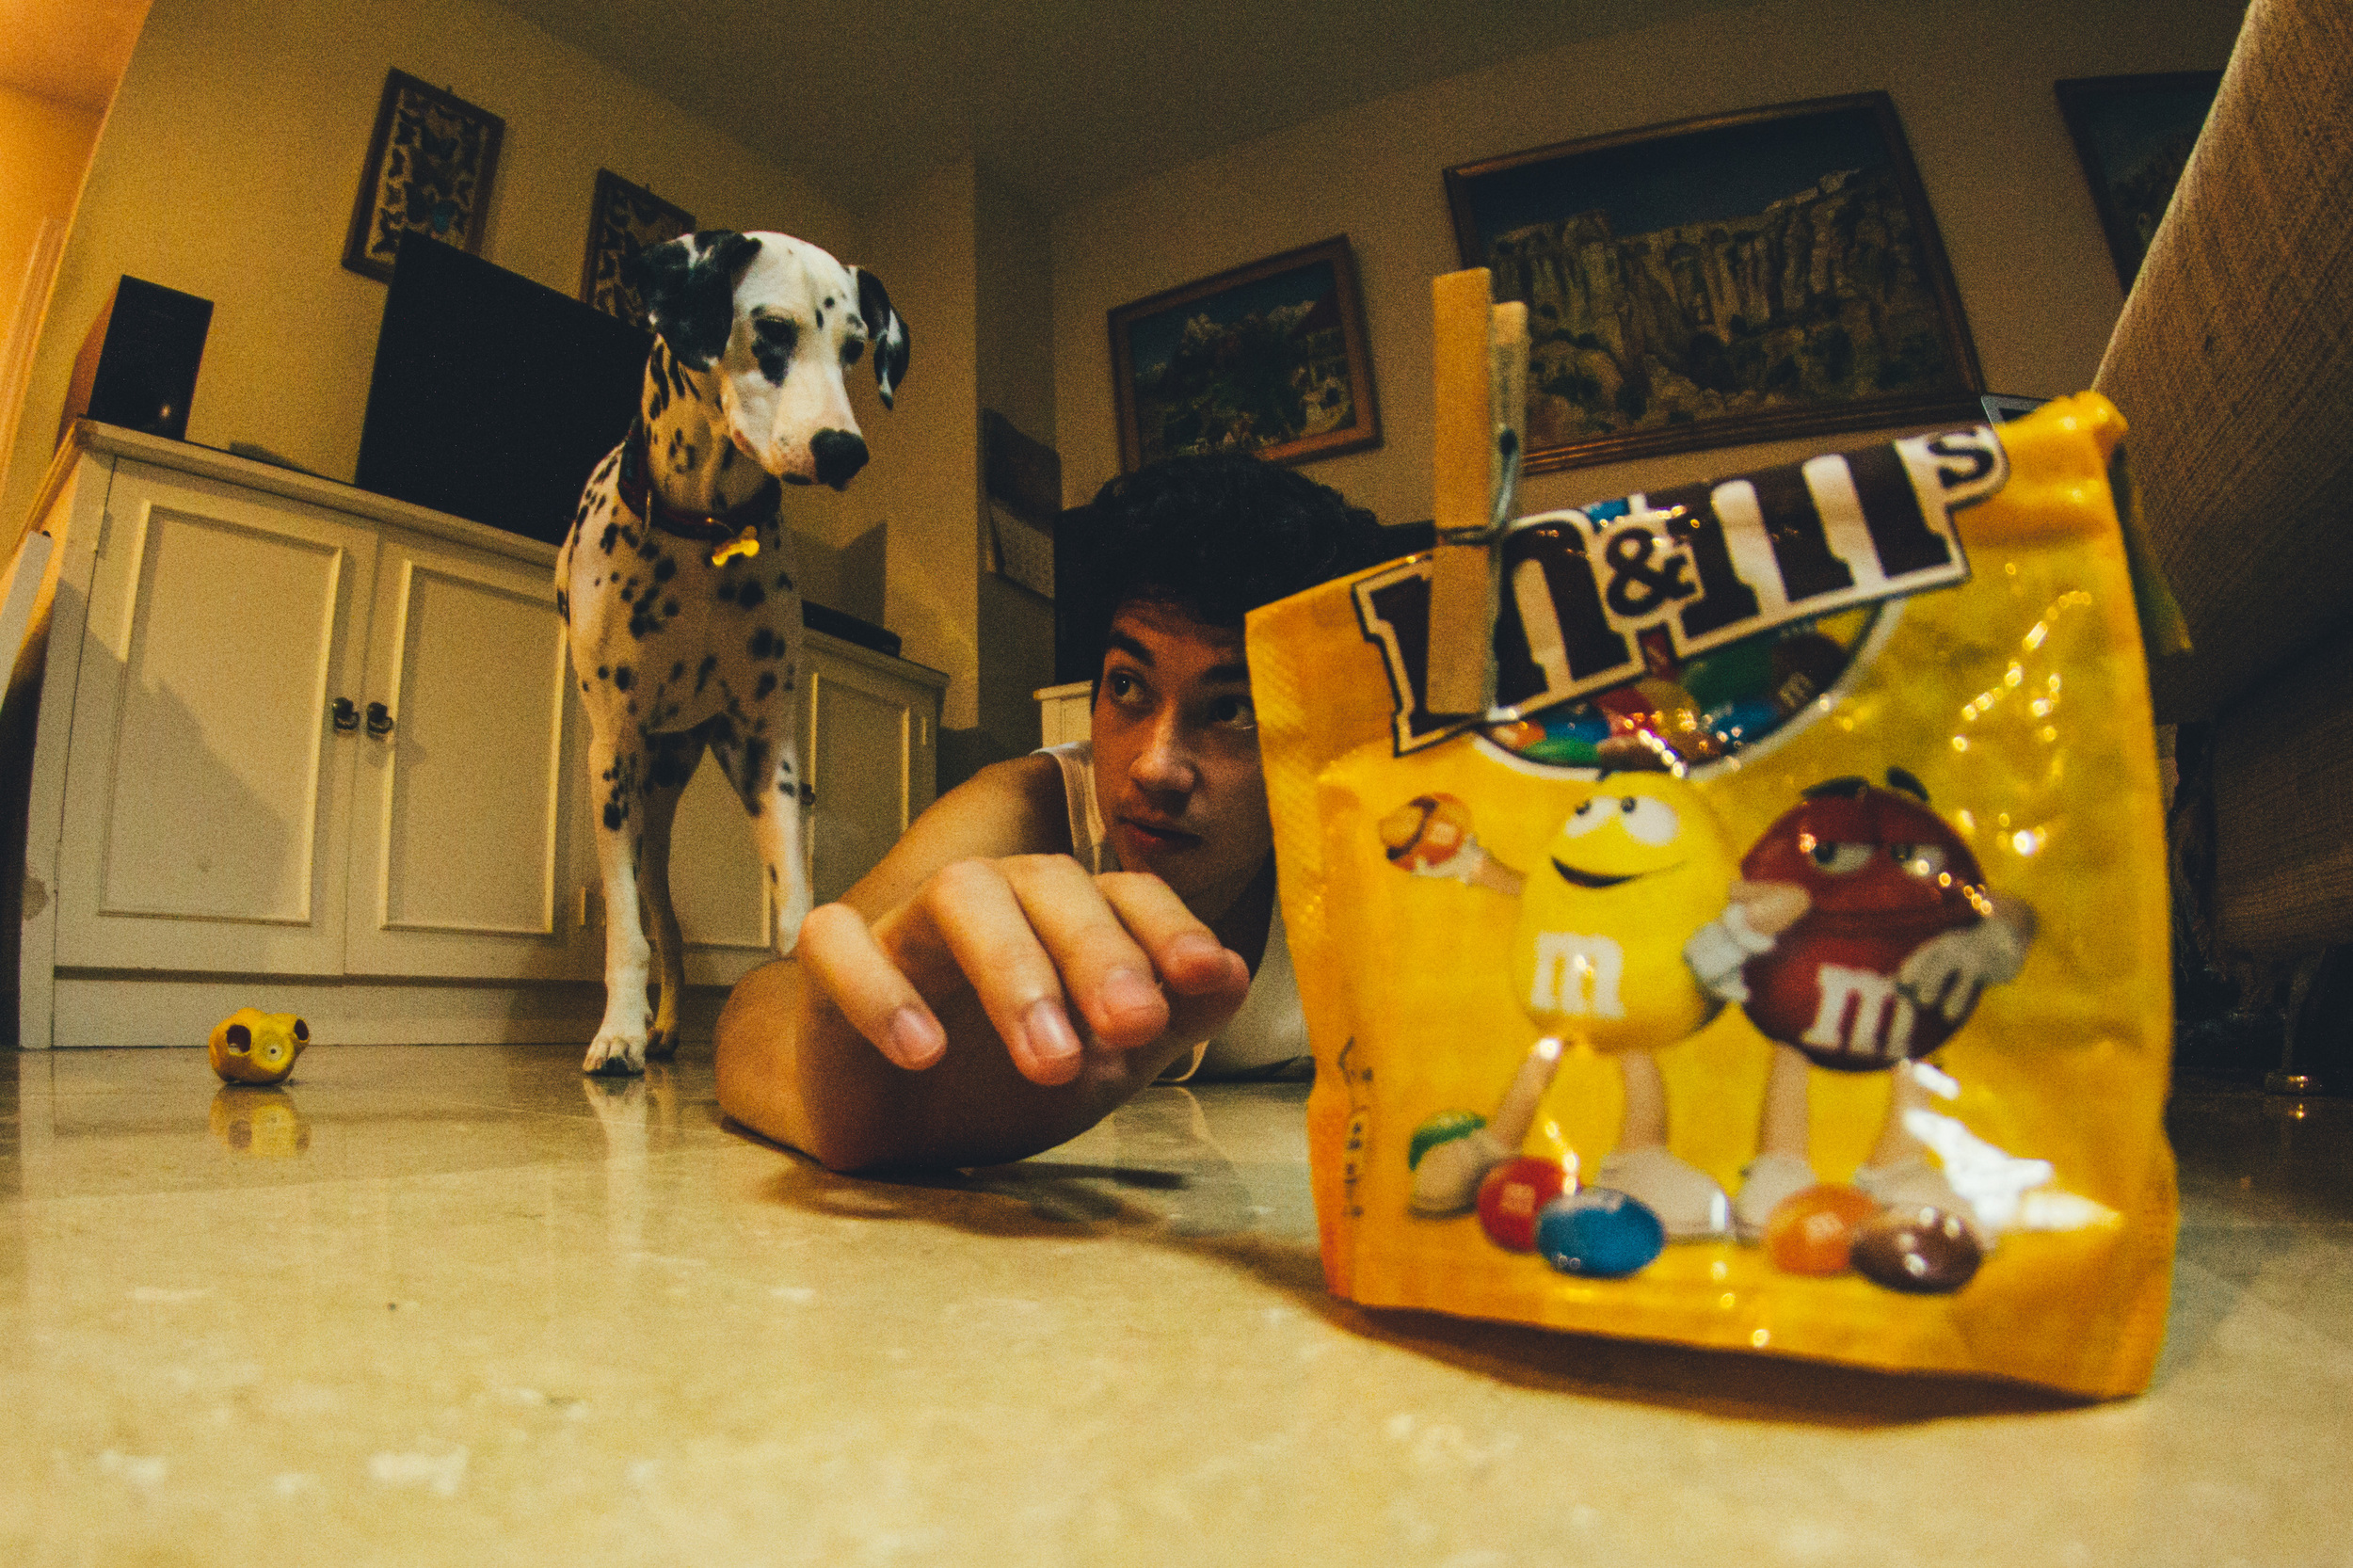 No M&Ms for you!    Leo Hidalgo/Flickr    (CC BY-NC 2.0)